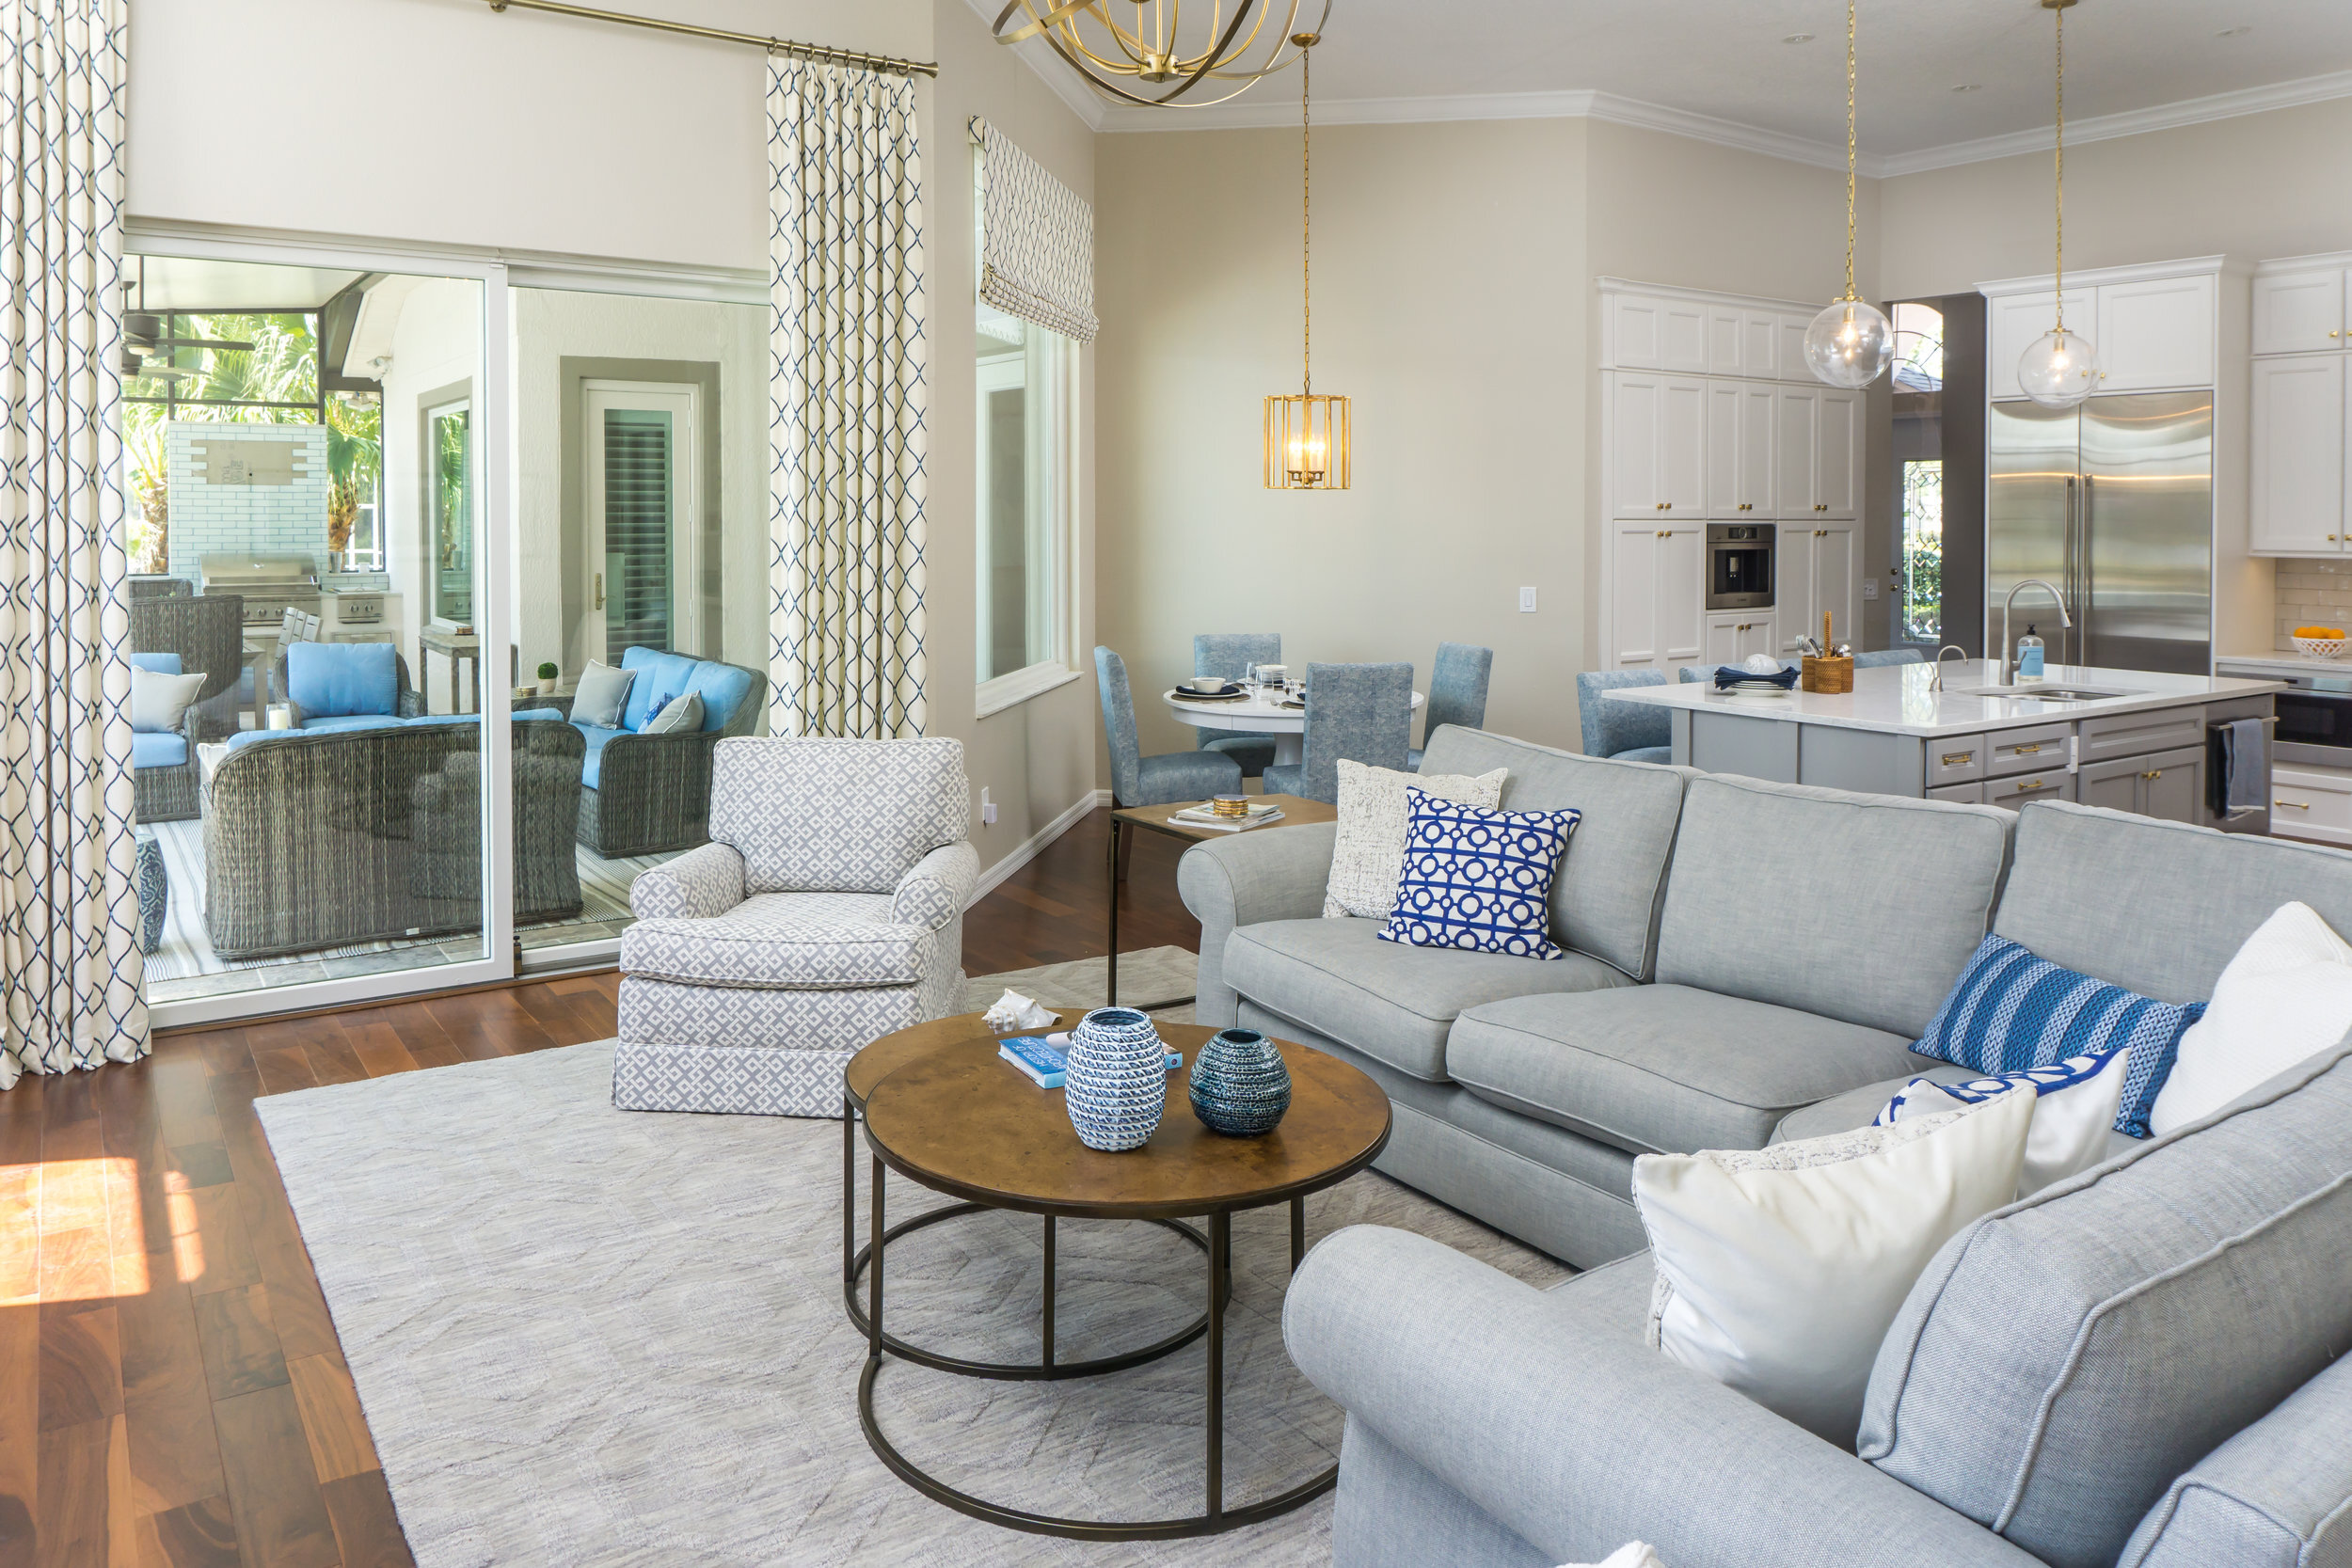 Interior Designer Near Winter Park Fl Common Interior Design Styles To Consider For Your Home Gail Barley Interiors